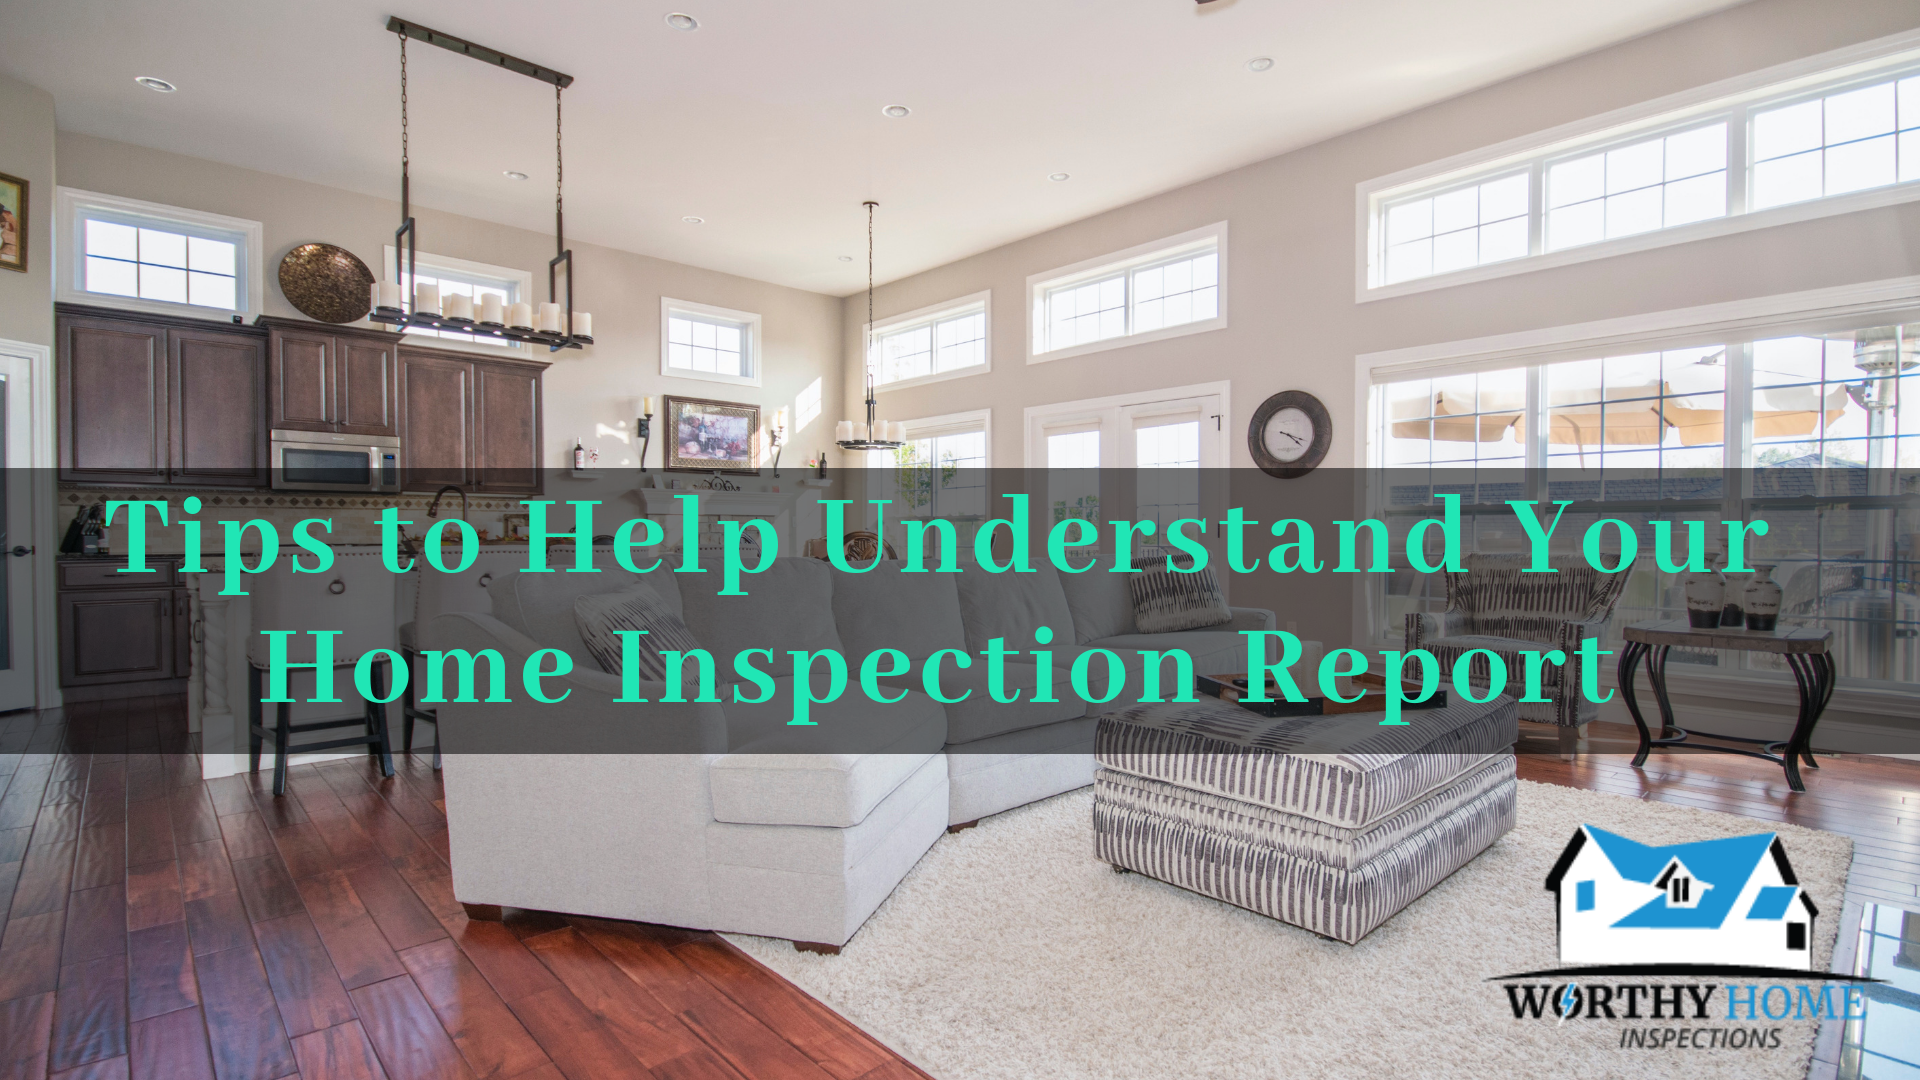 Tips to Help Understand Your Home Inspection Report